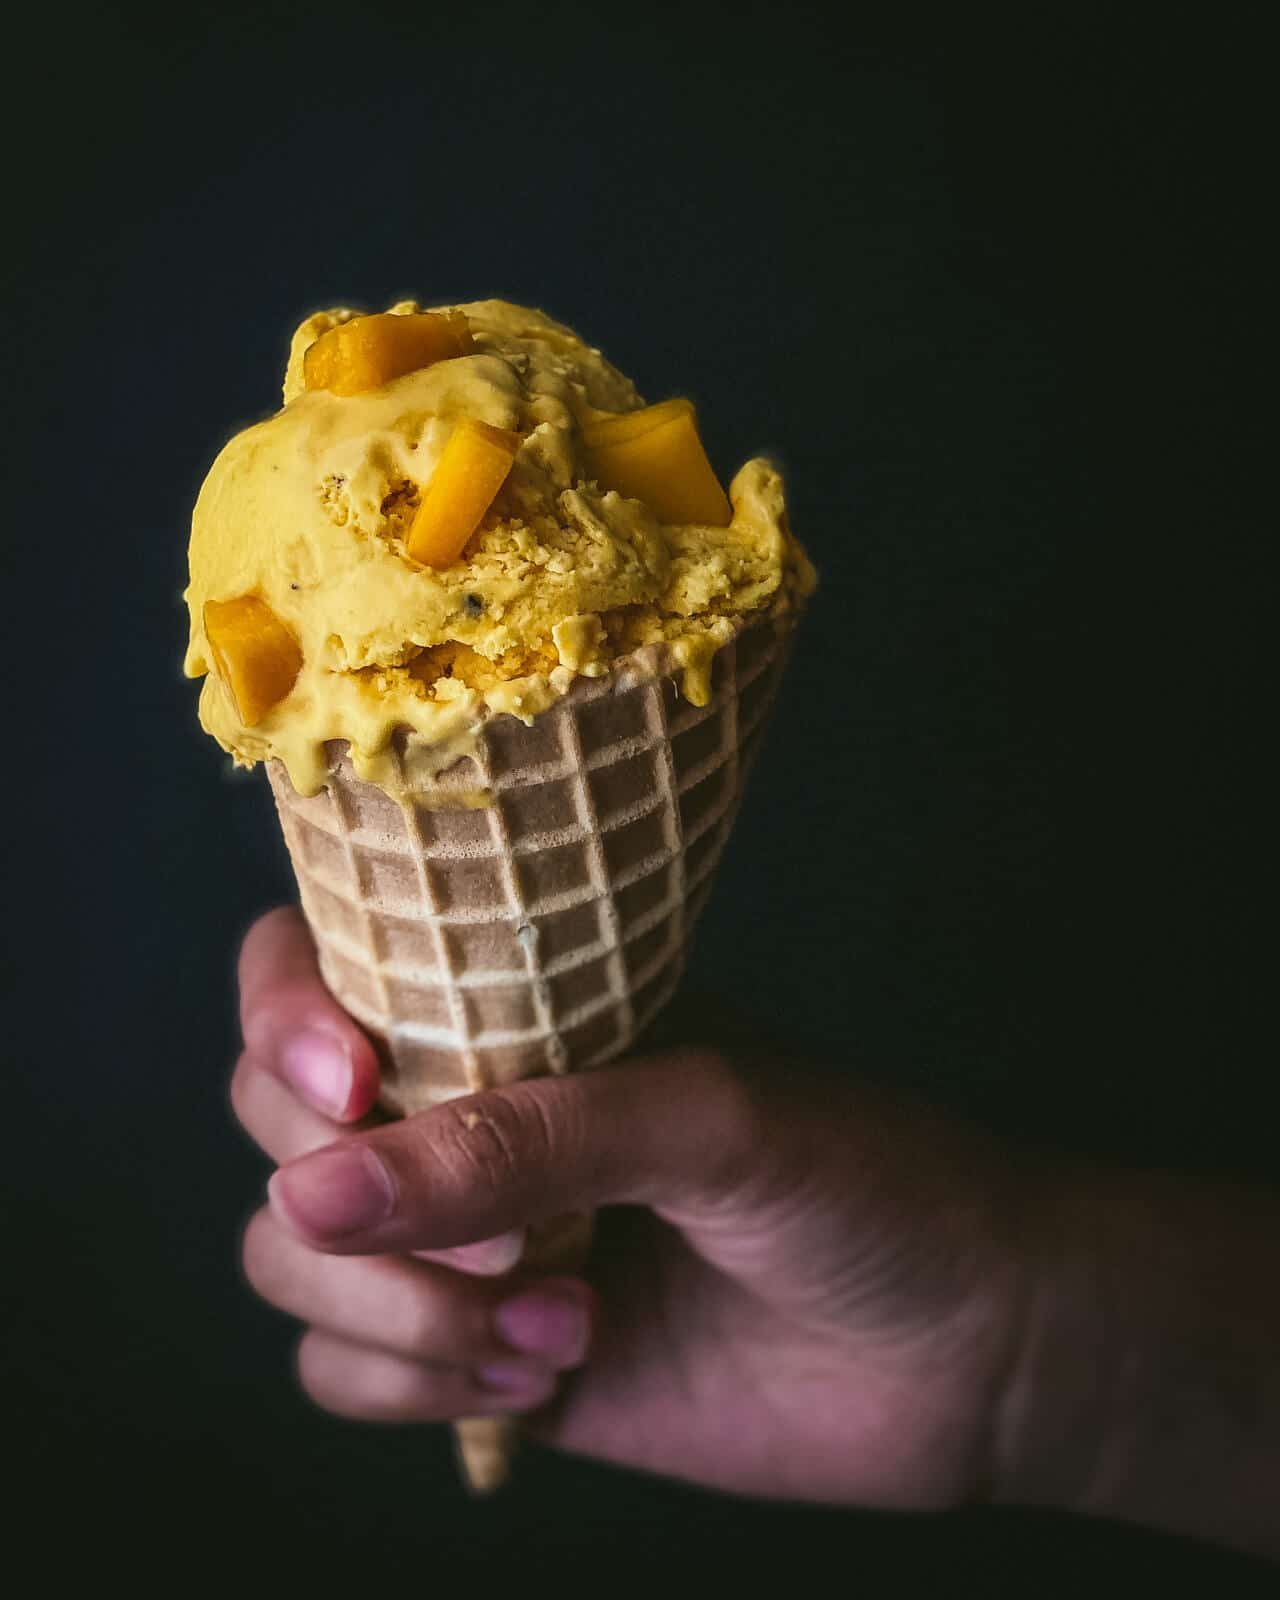 A hand holding a cone filled with mango ice cream